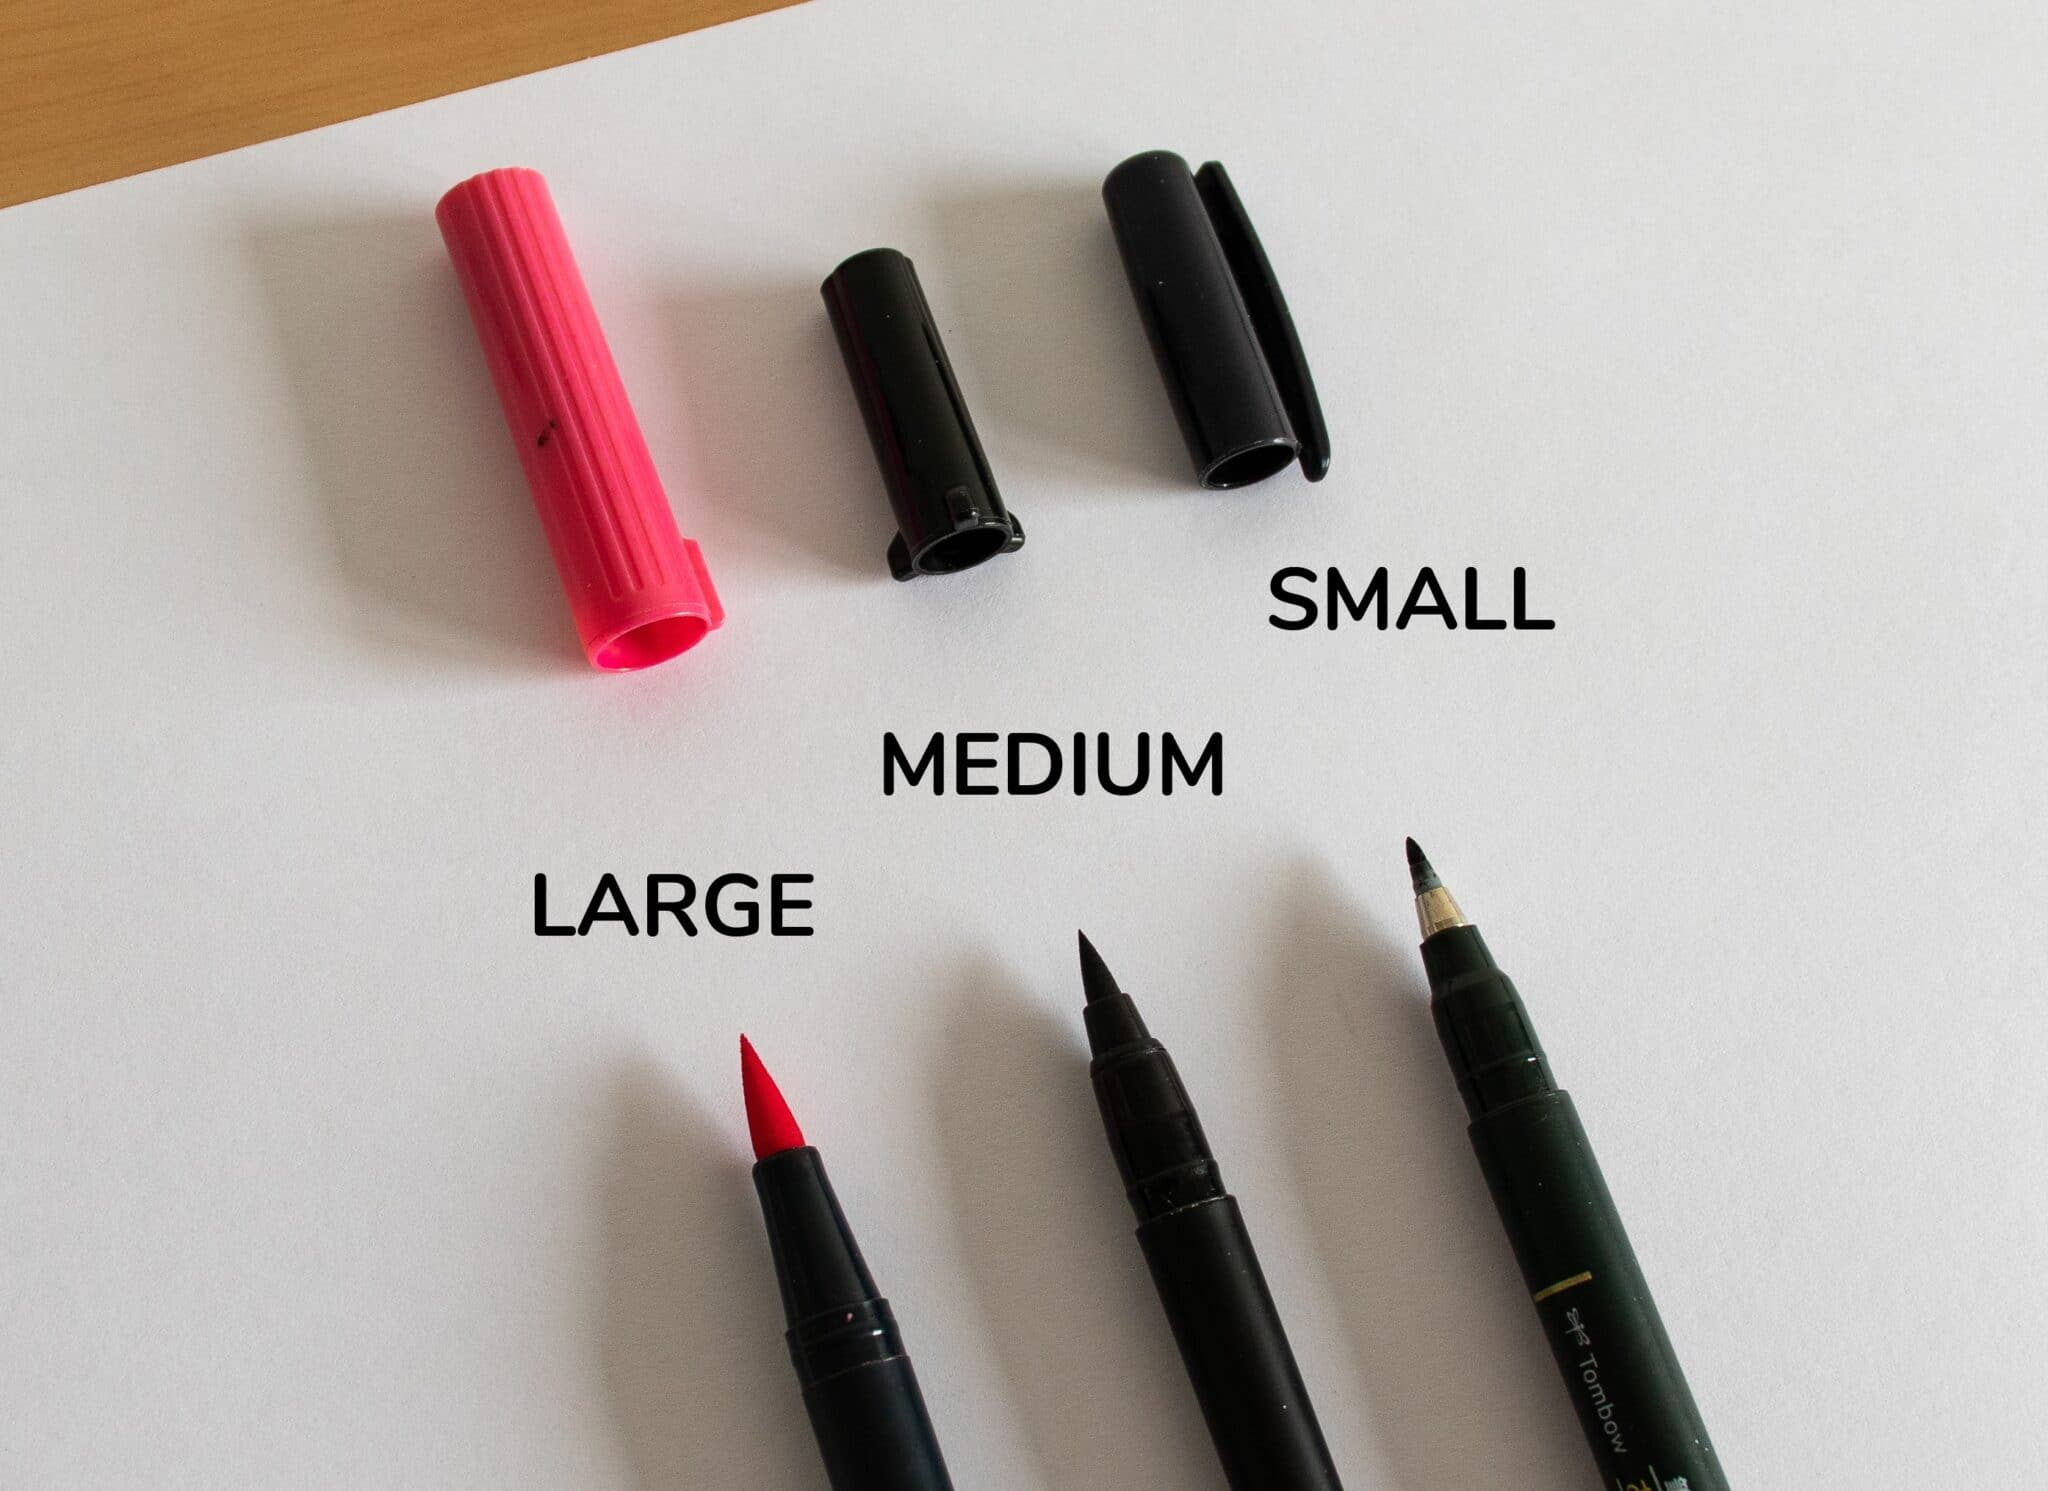 The size of the nibs